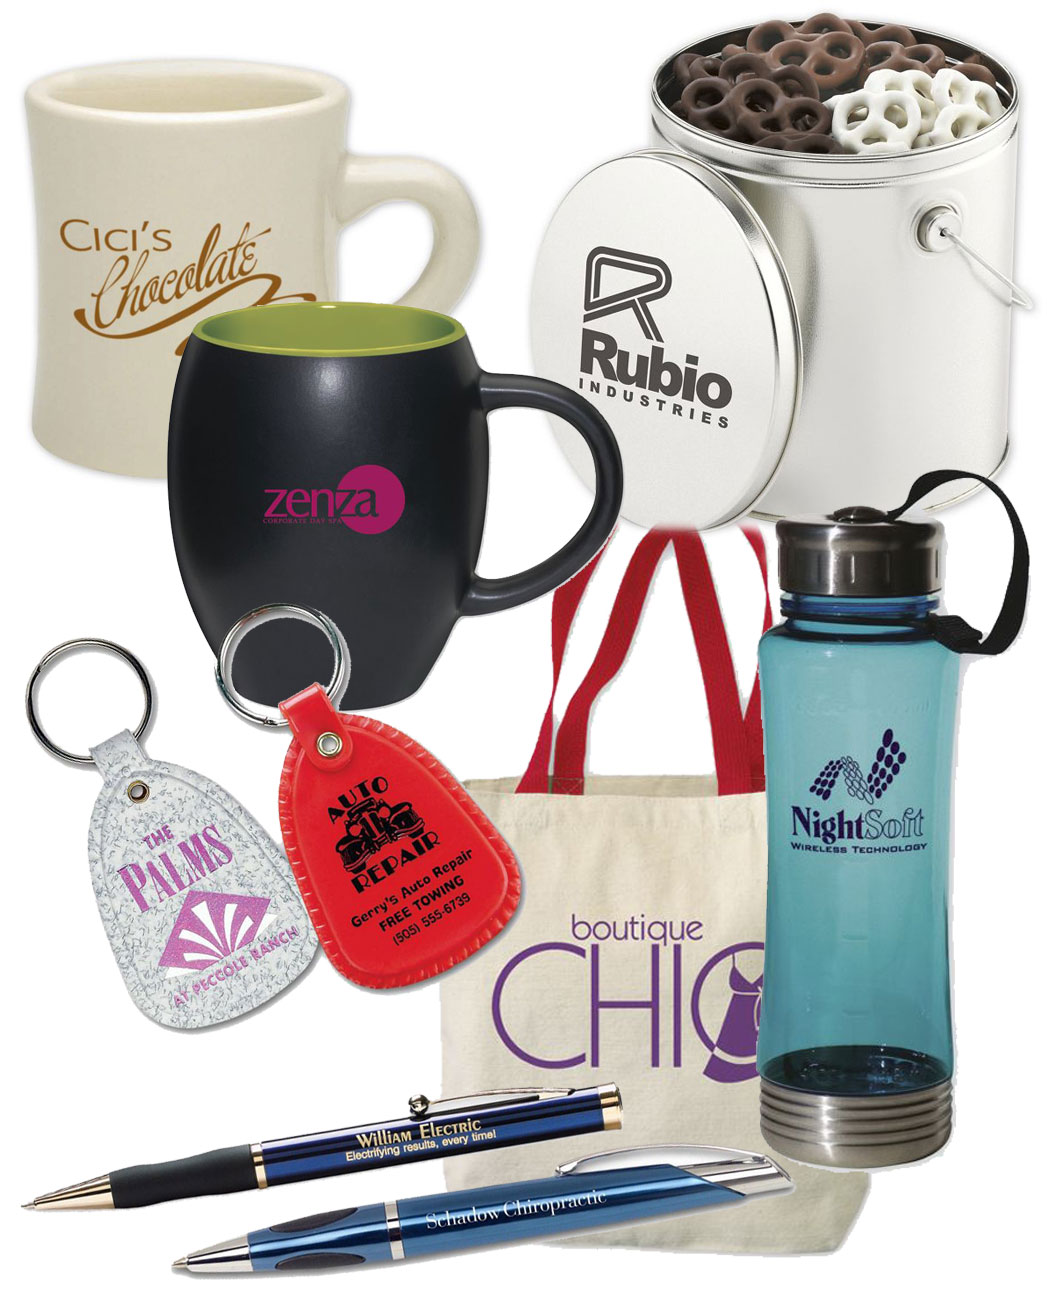 Mt. Juliet, TN Promotional and Imprinted Items